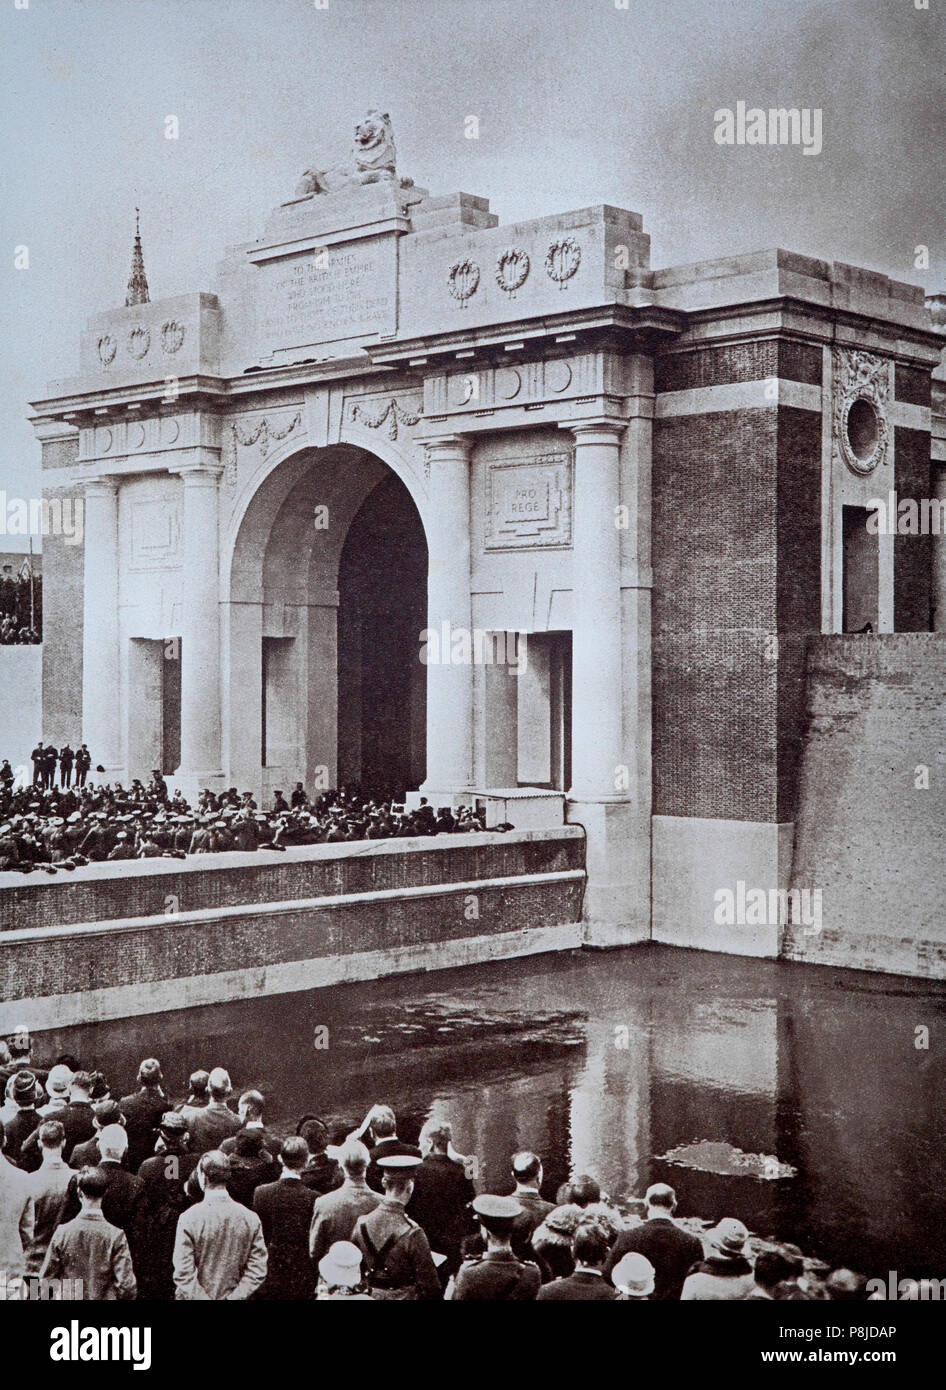 The Menin Gate Memorial to the Missing is a war memorial in Ypres, Belgium, dedicated to the British and Commonwealth soldiers who were killed in the Ypres Salient of World War I and whose graves are unknown. The memorial is located at the eastern exit of the town and marks the starting point for one of the main roads out of the town that led Allied soldiers to the front line. Designed by Sir Reginald Blomfield and built and maintained by the Commonwealth War Graves Commission, the Menin Gate Memorial was unveiled on 24 July 1927 by Field Marshal Lord Plumer. - Stock Image